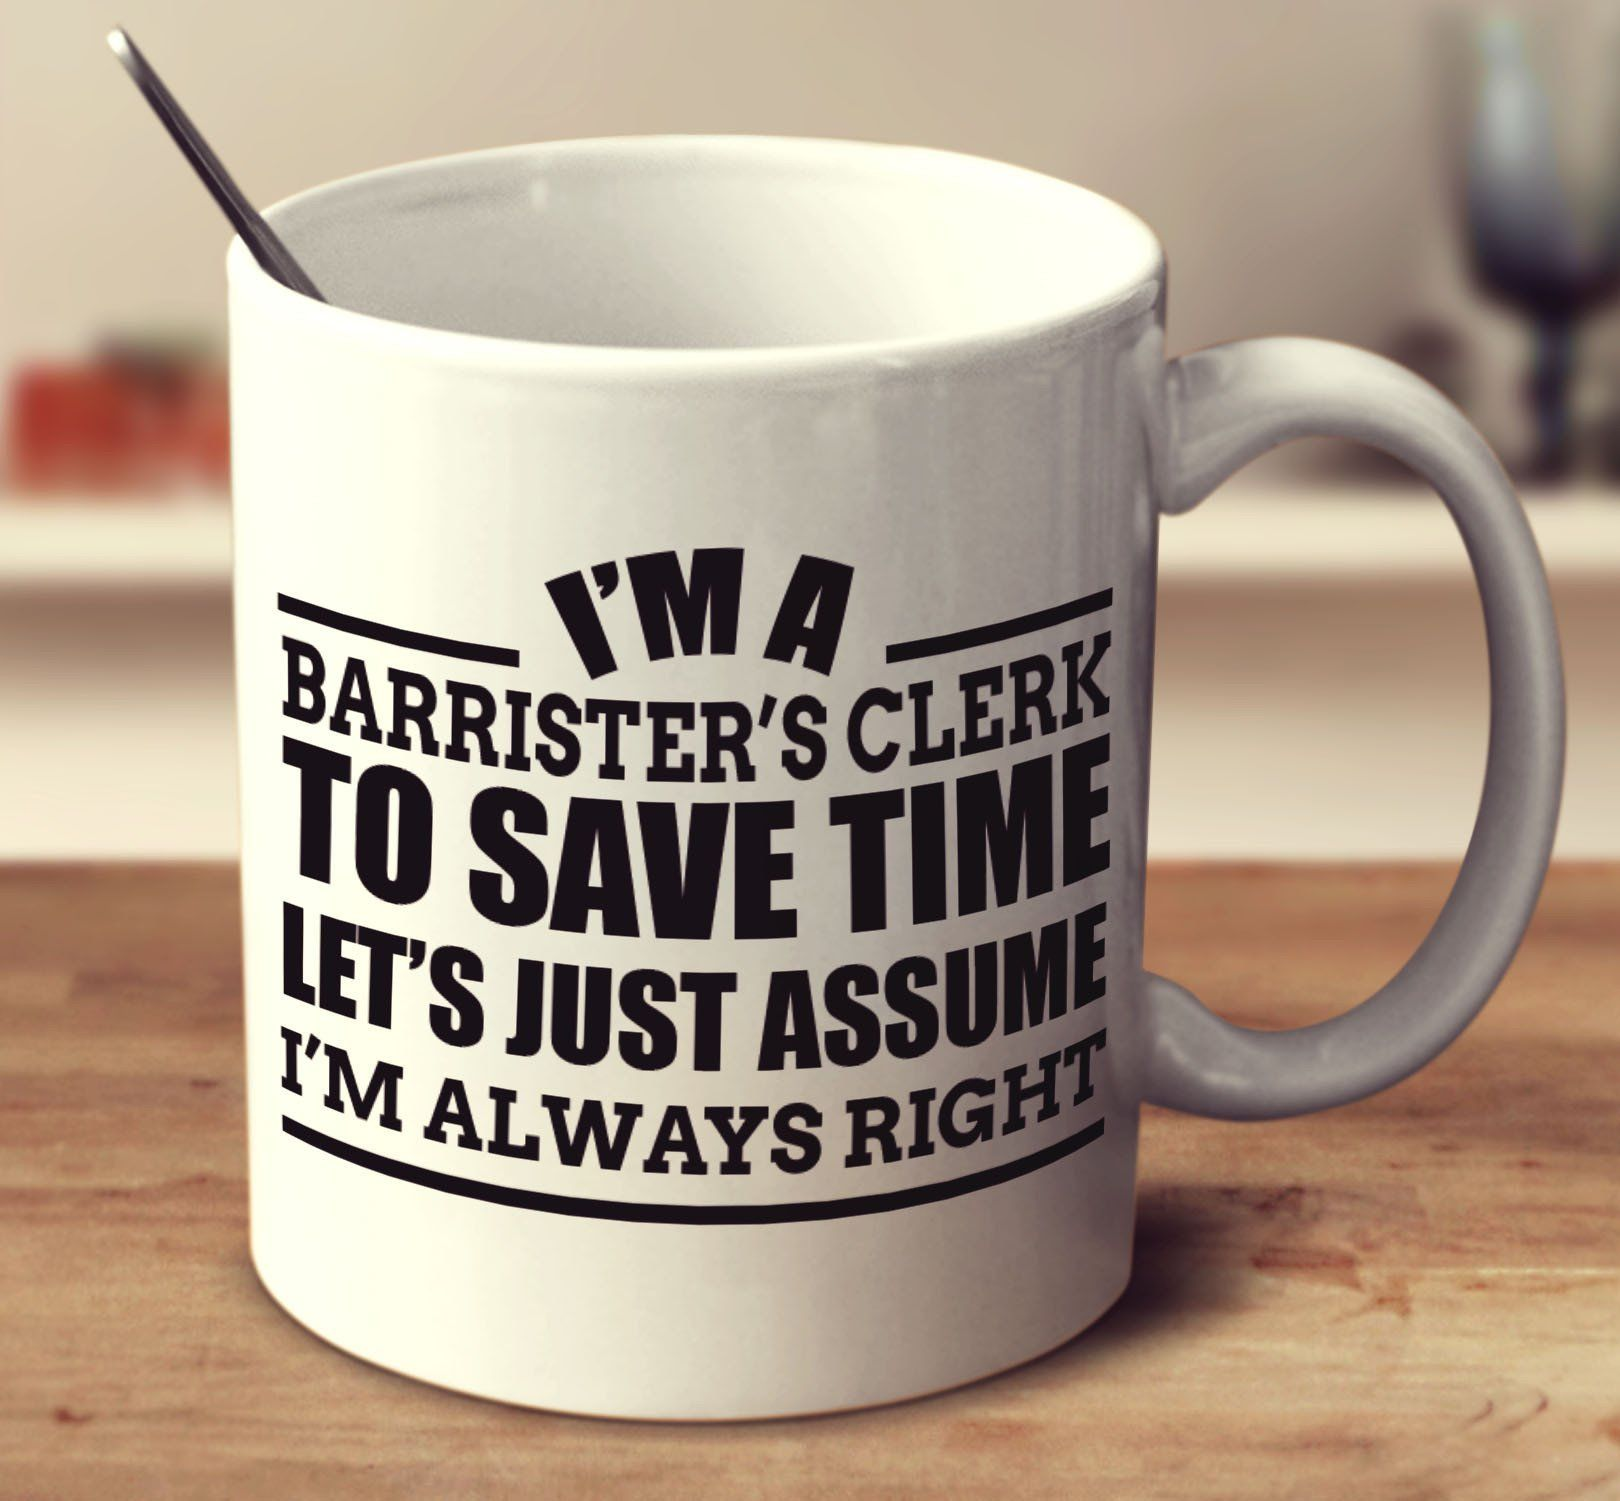 I'm A Barrister's Clerk To Save Time Let's Just Assume I'm Always Right